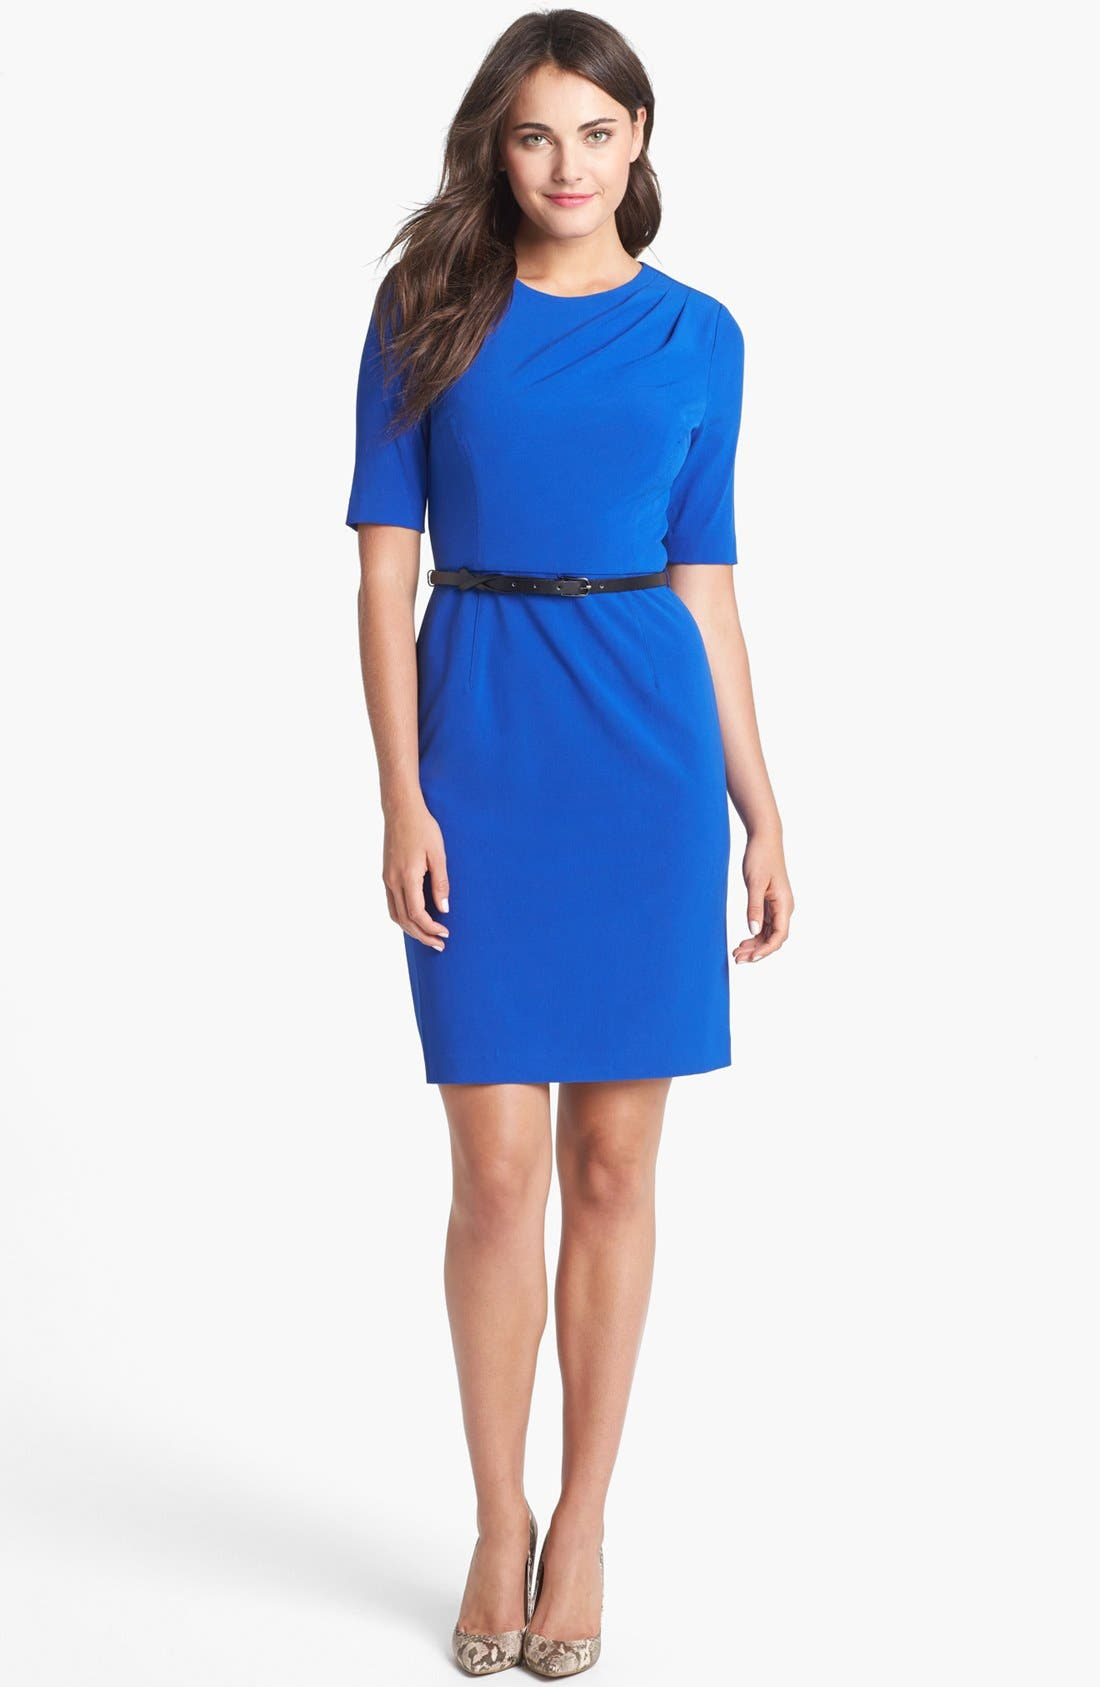 Alternate Image 1 Selected - Ivy & Blu for Maggy Boutique Sheath Dress (Petite)